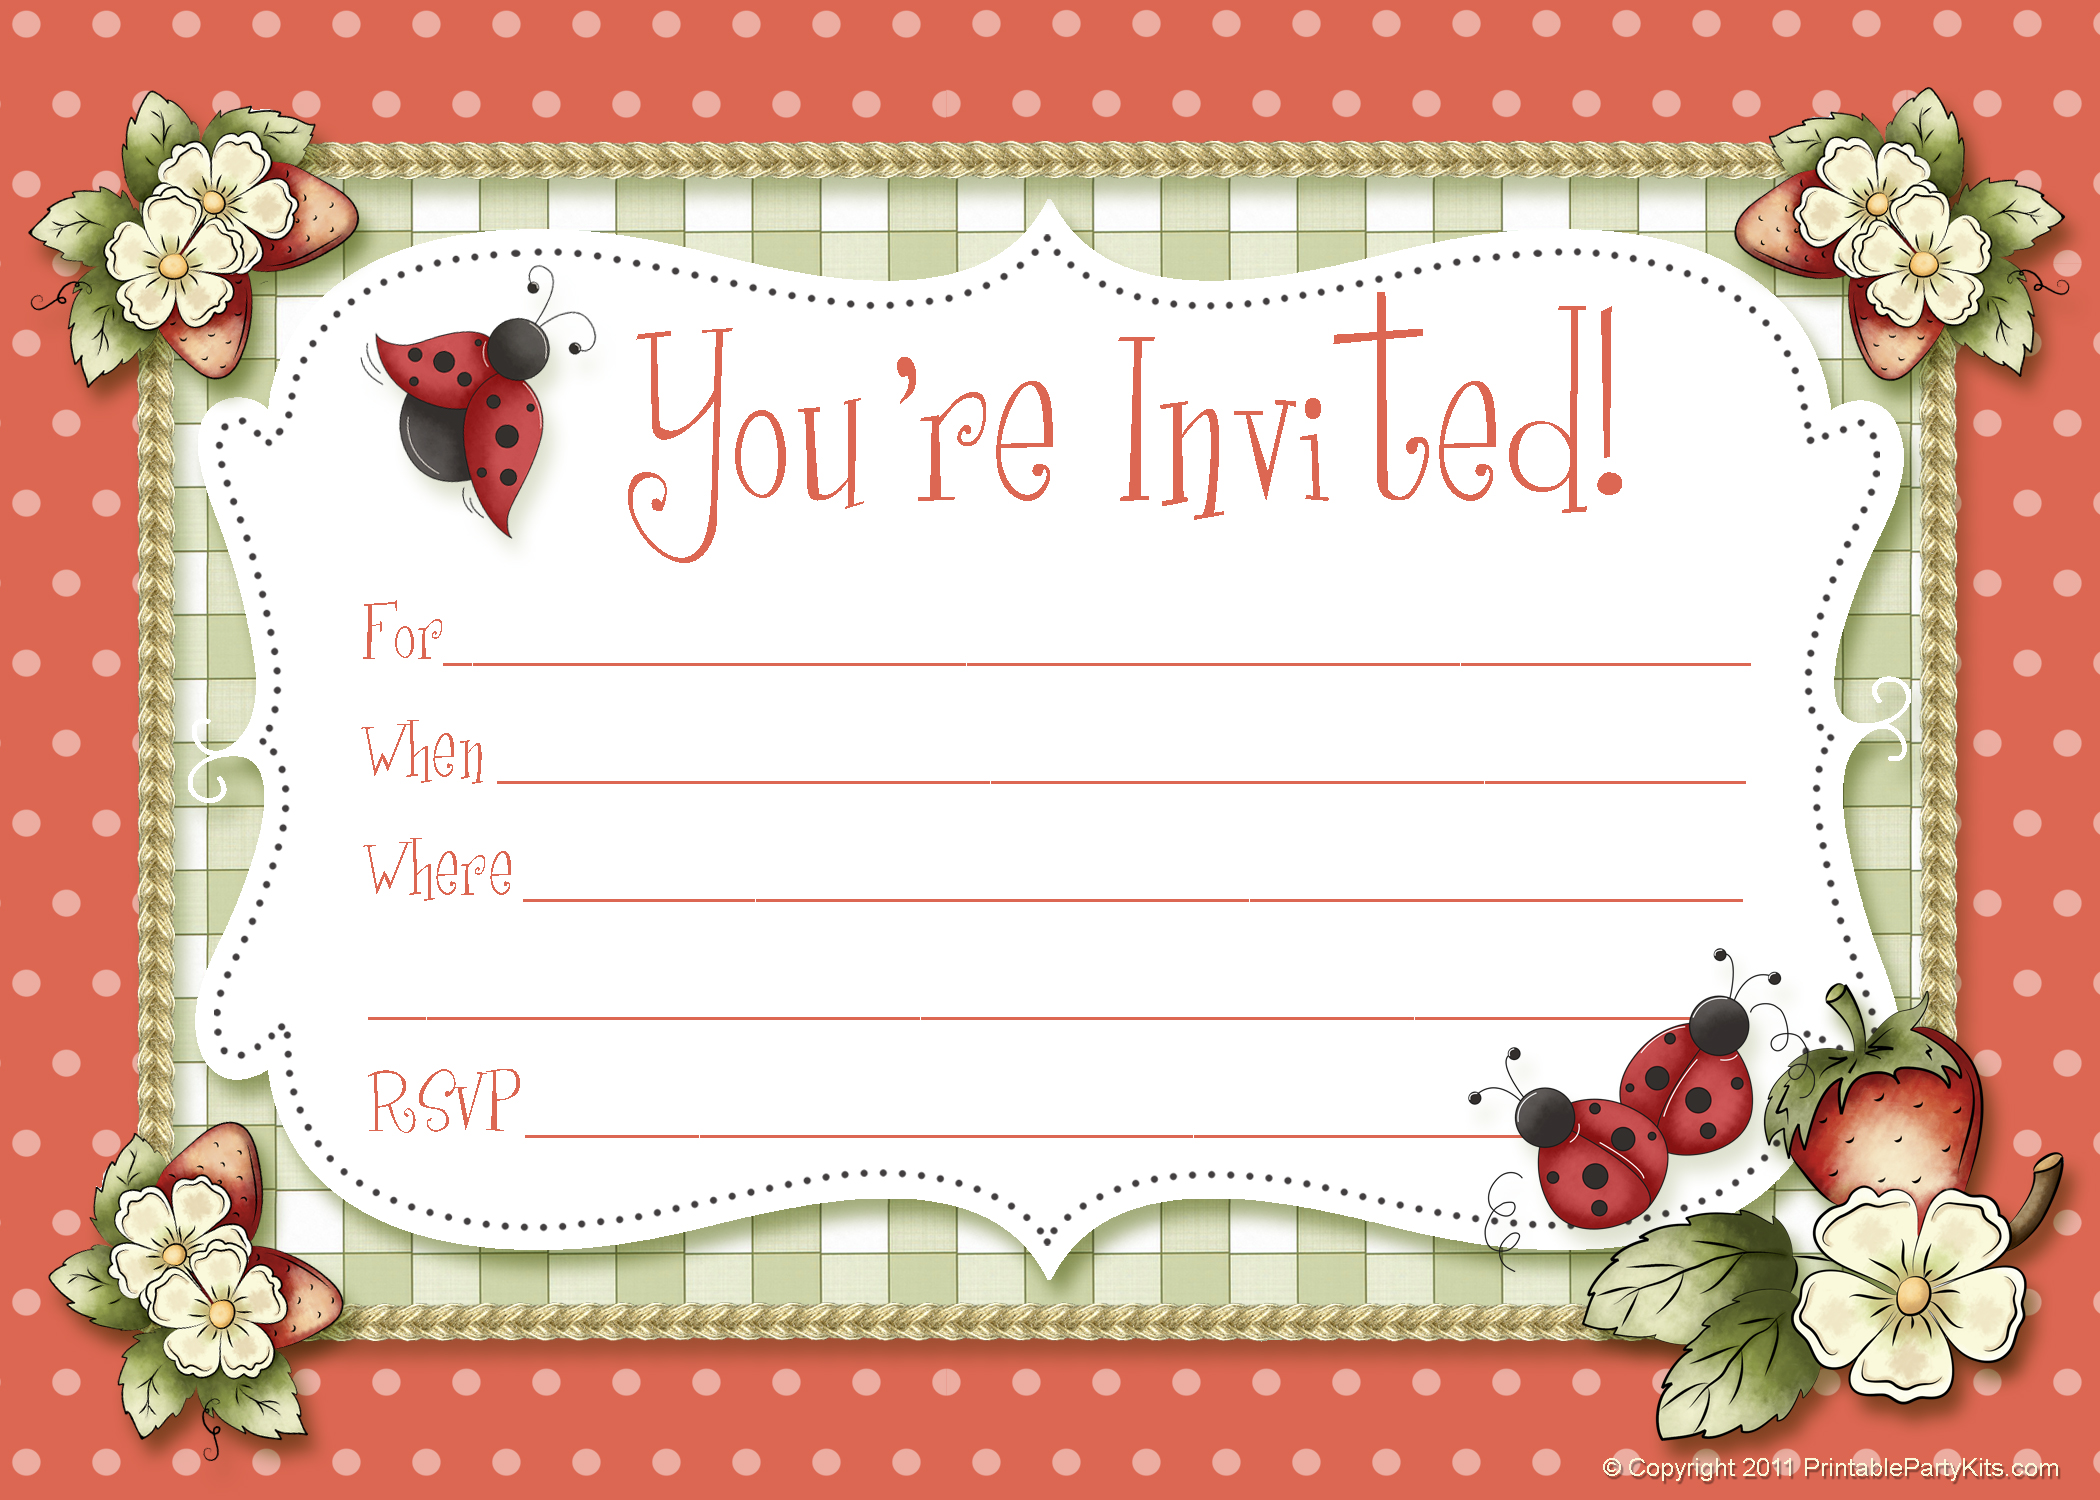 free online invitation card maker for birthday ; birthday-invitation-card-editor-online-free-best-of-create-party-invitations-%25E2%2580%2593-gangcraft-of-birthday-invitation-card-editor-online-free